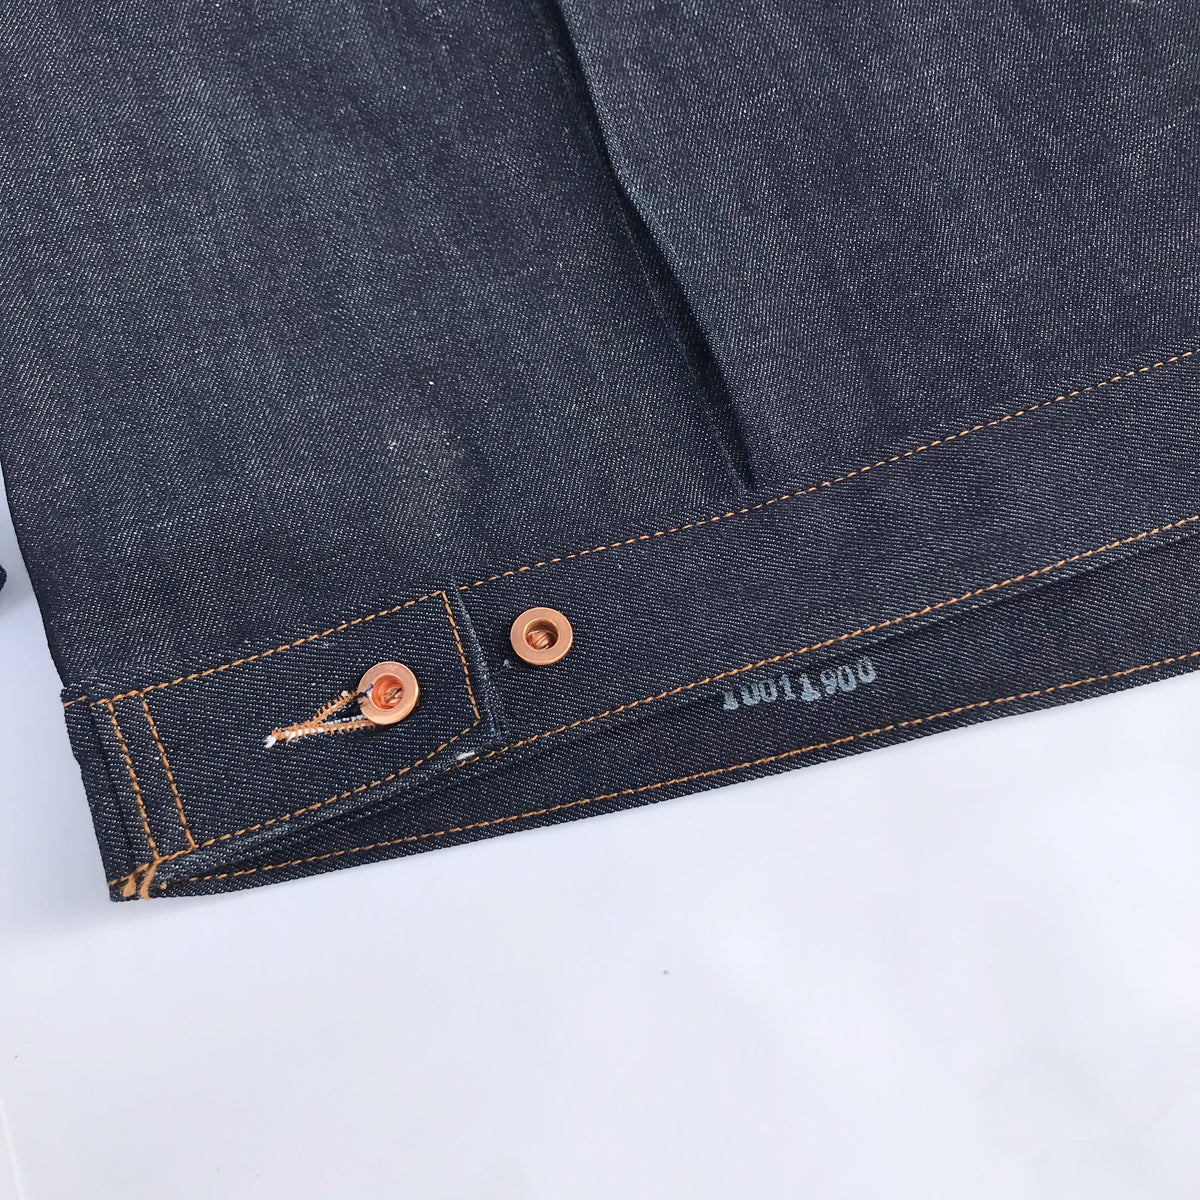 14oz Indigo Cone Mills White Selvage 1953 Type II Jacket  {Limited Quantities}